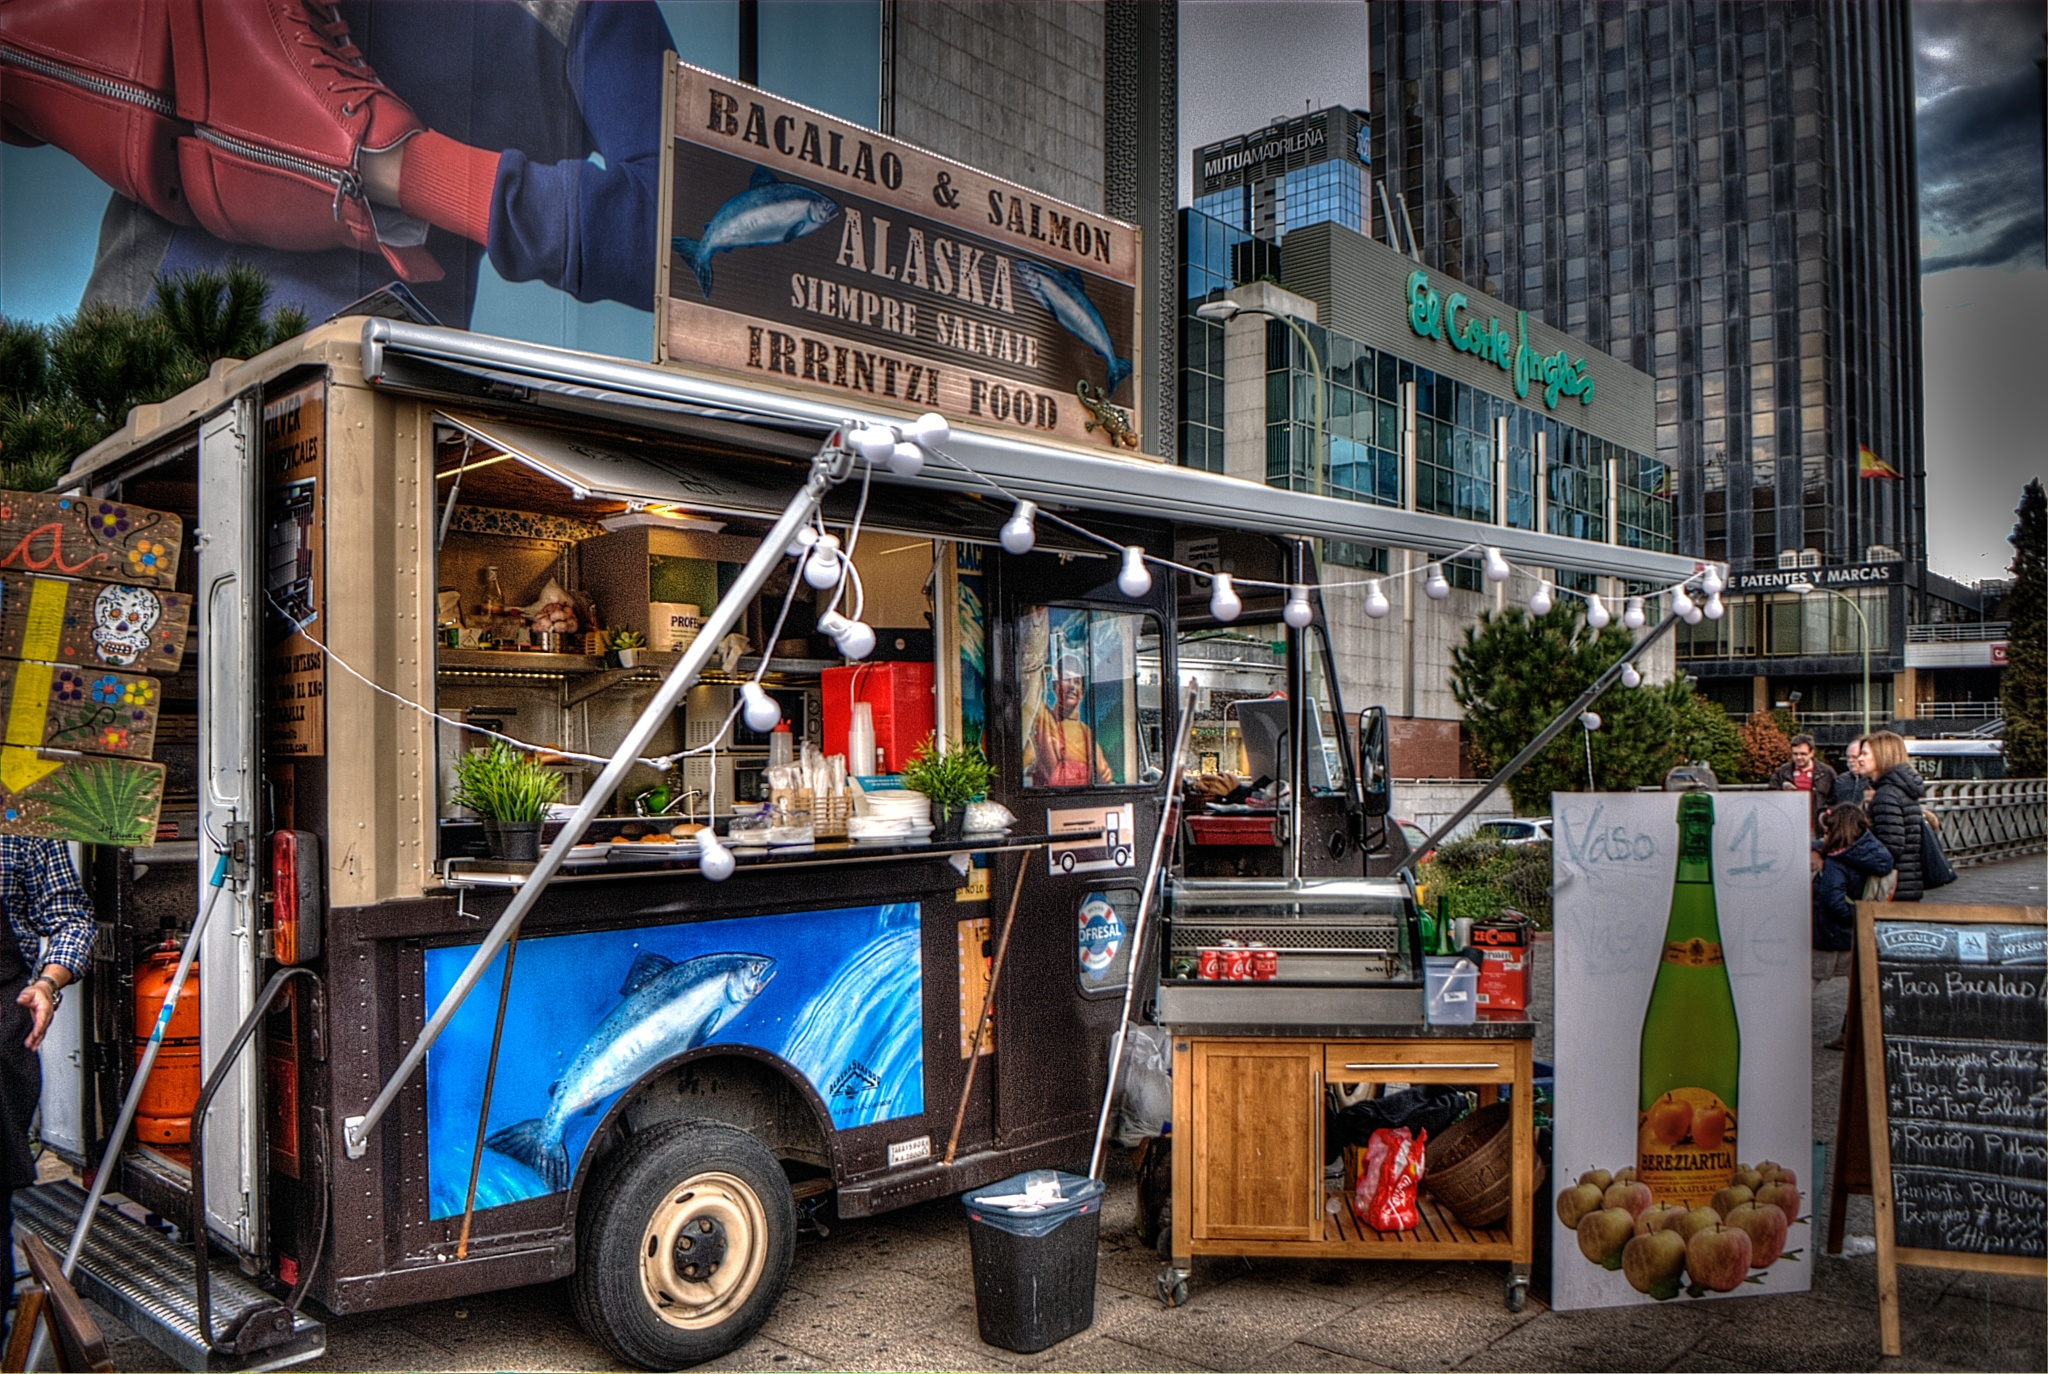 Expo Food Truck Madrid 2016 by Miguel Angel Posincovich